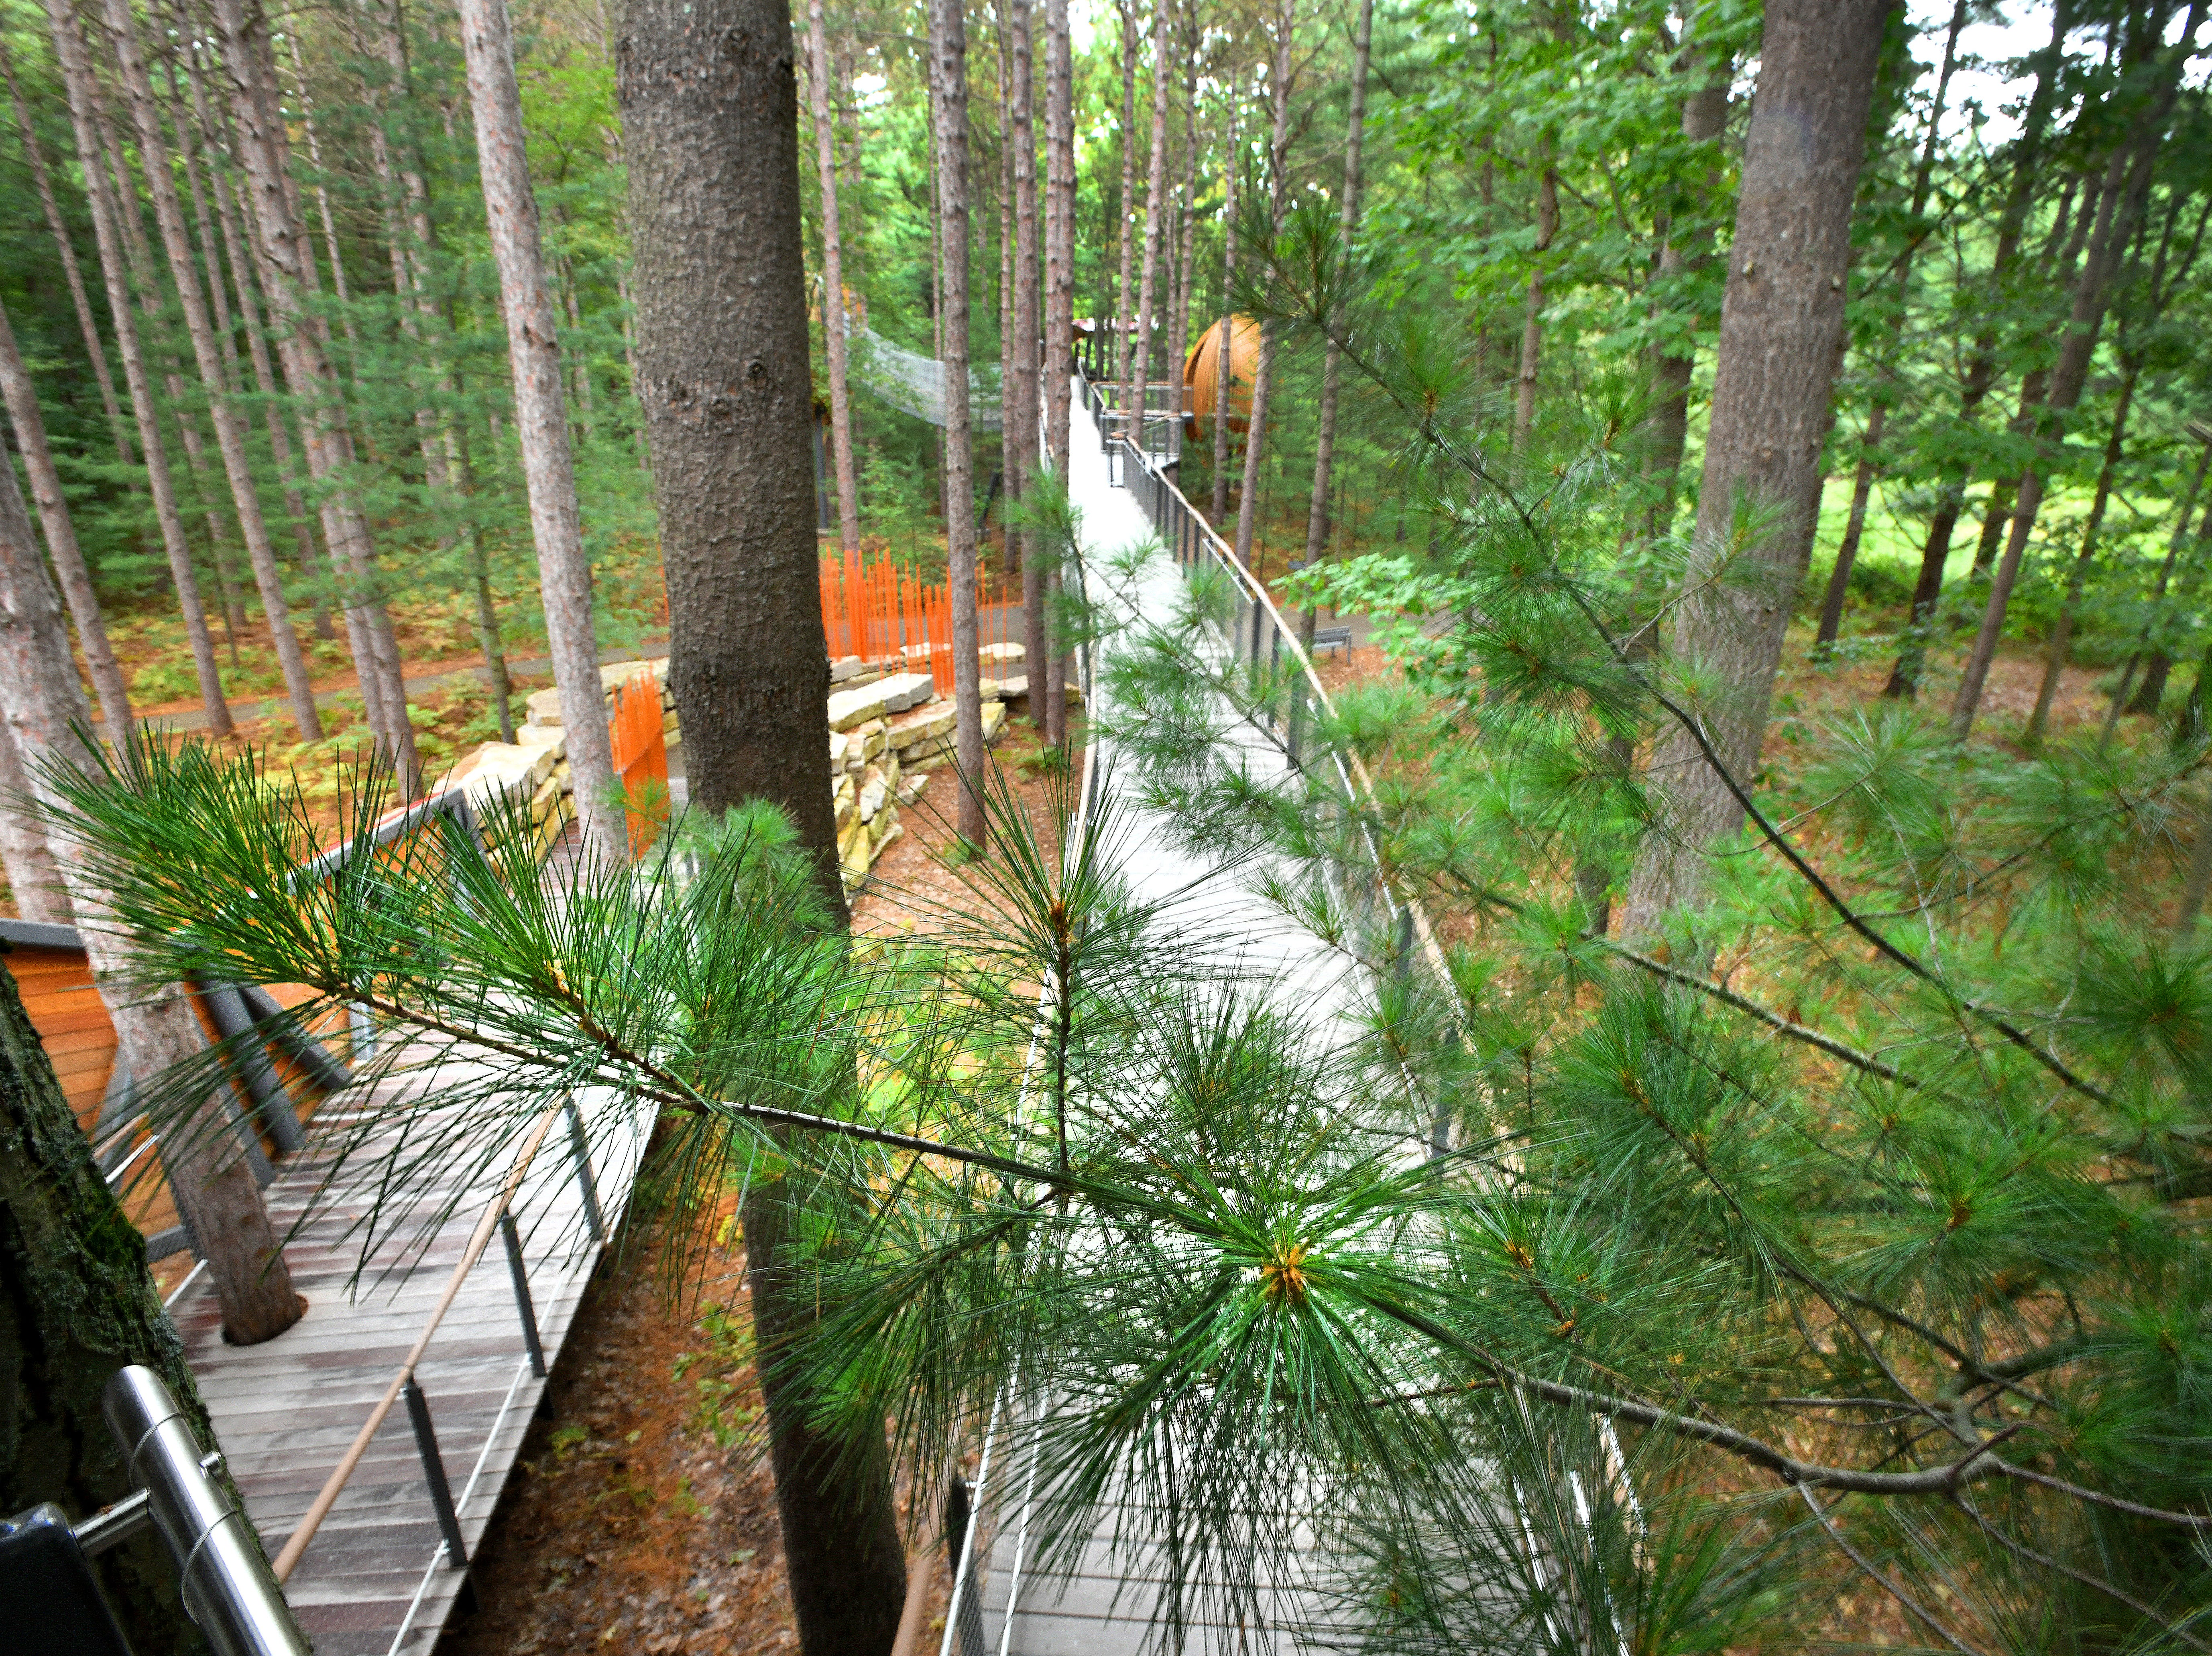 The soft, silky needles of Michigan's state tree, the white pine, are within reach of the walk, high above the ground.